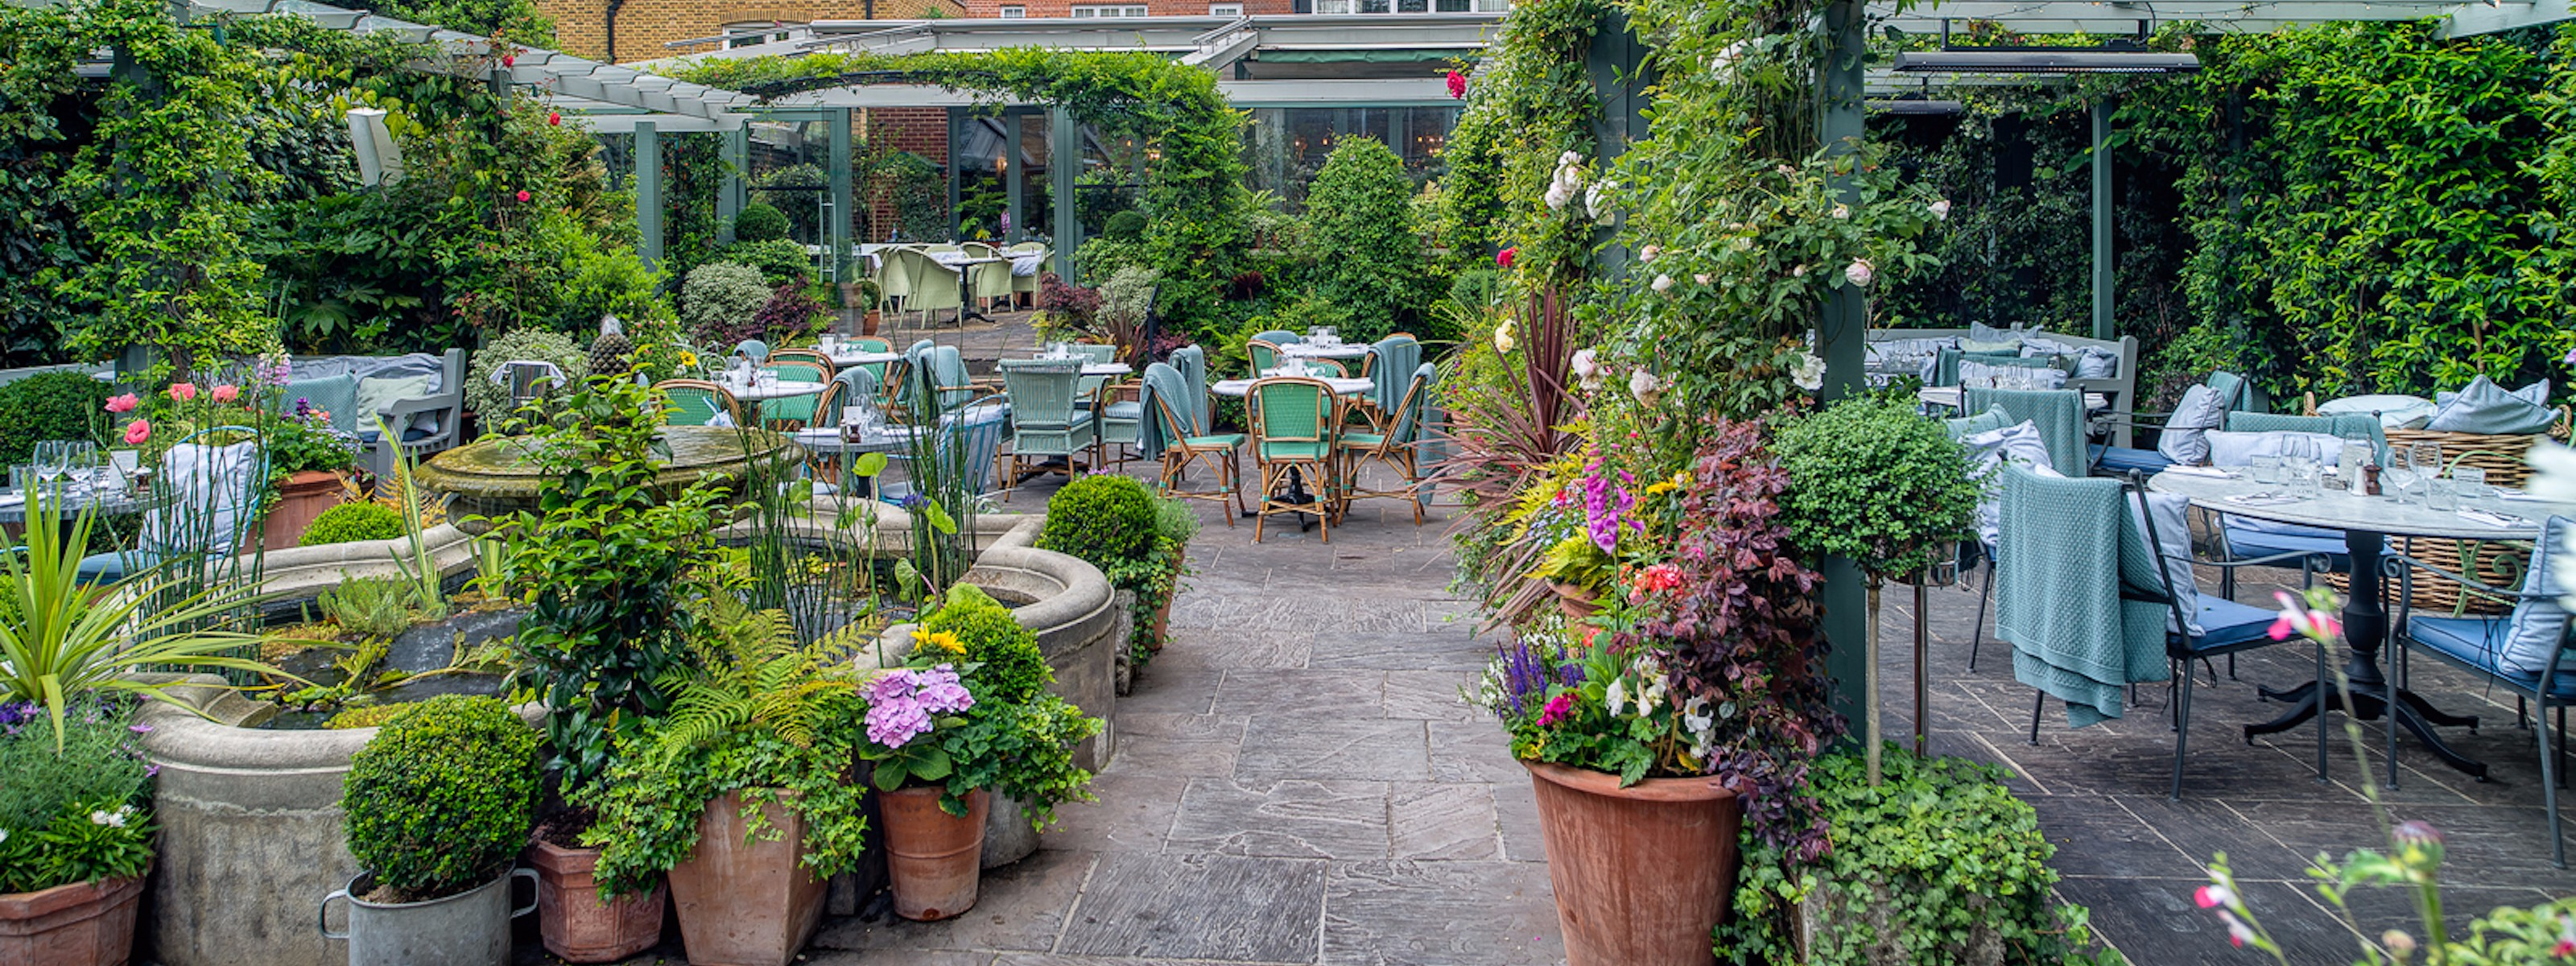 The Ivy Chelsea Garden Chelsea London The Infatuation